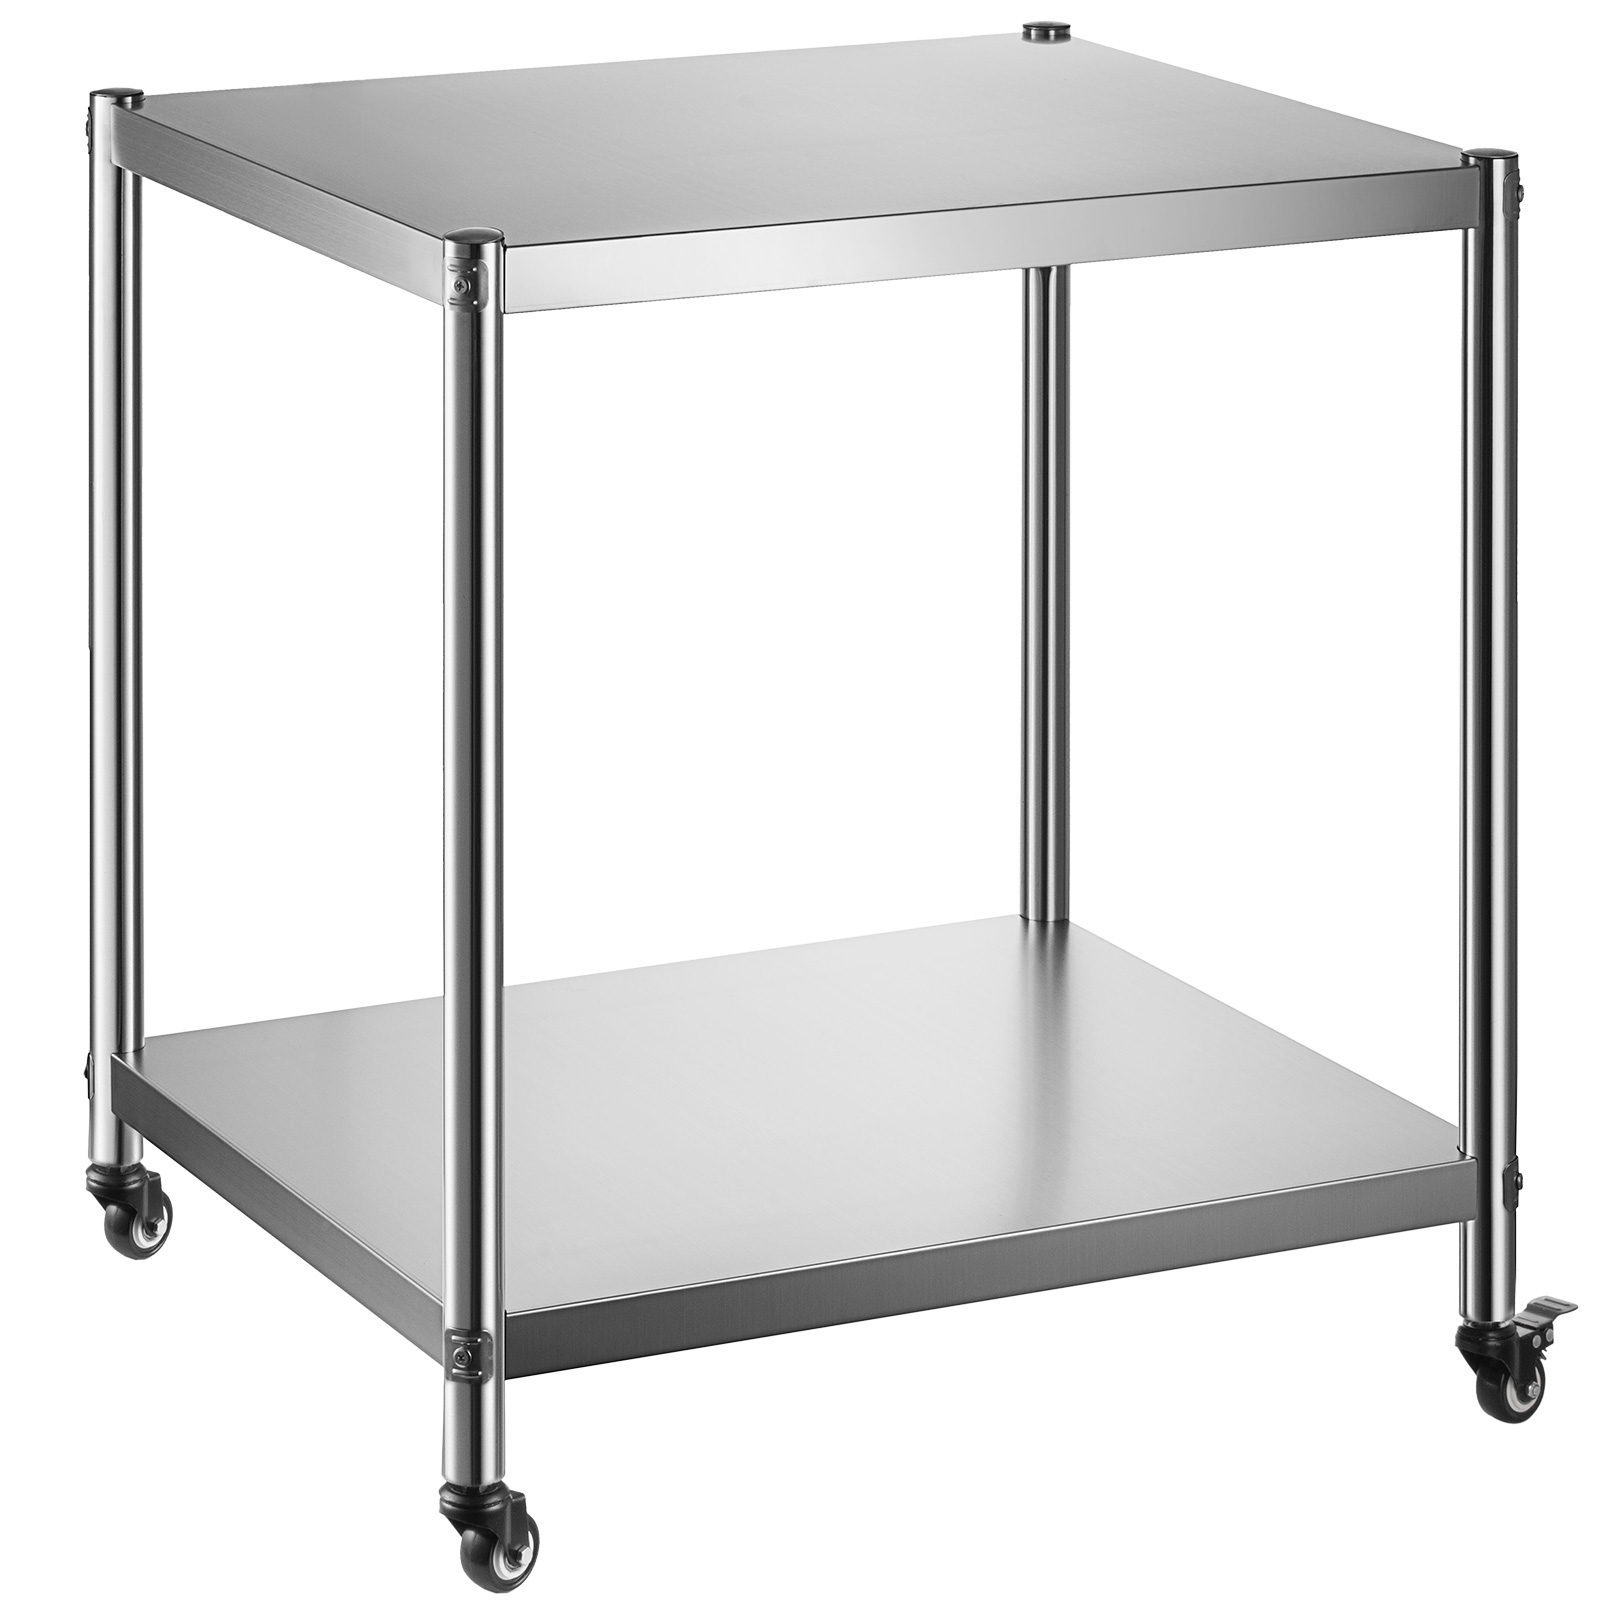 """36""""x24"""" rolling stainless steel top kitchen work table"""